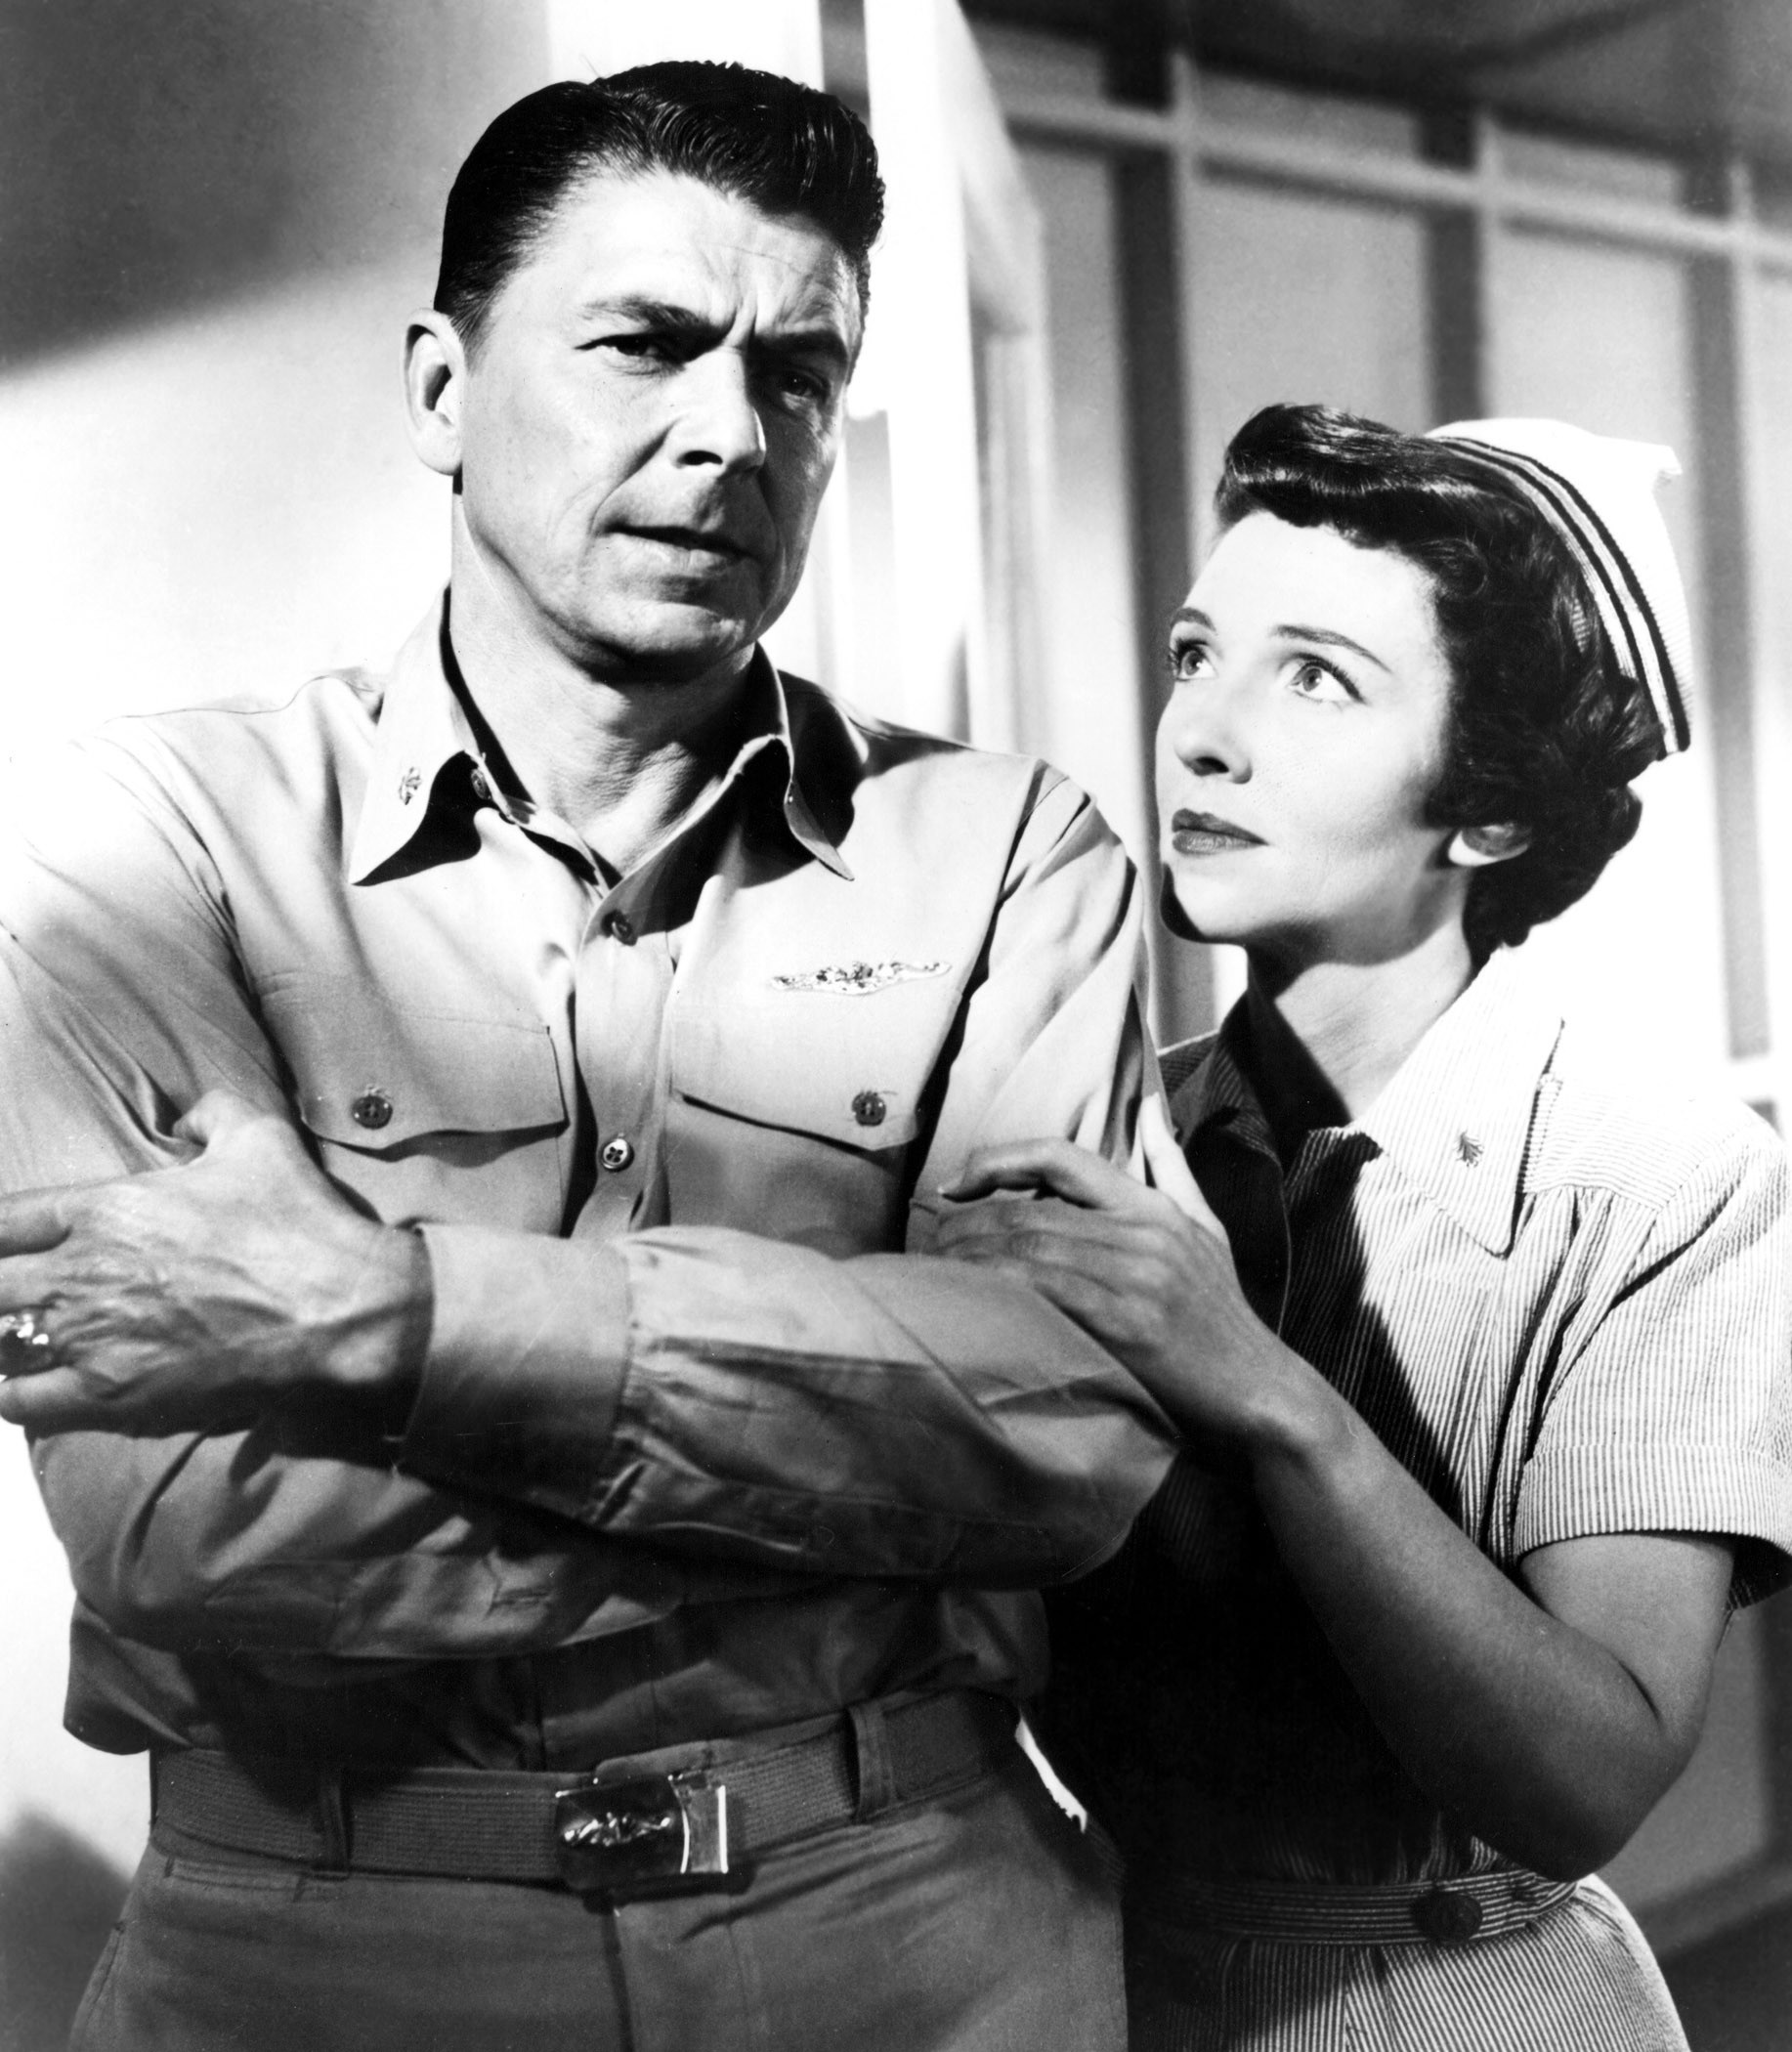 Co-Stars                                                              As a film actress, Nancy appeared in 11 films and generally received favorable reviews from critics, though not so much for her most widely mentioned performance, as a nurse engaged to Reagan's character in Hellcats of the Navy, above, the only film in which she and her future husband played together. By the time she was cast in the role, Ron and Nancy had already been married five years. After one more film role and a smattering of televison appearances, Nancy would leave acting for good. She later commented that she became an actress because she  didn't want to go back to Chicago and lead the life of a post-debutante. I wanted to do something until I found the man I wanted to marry.